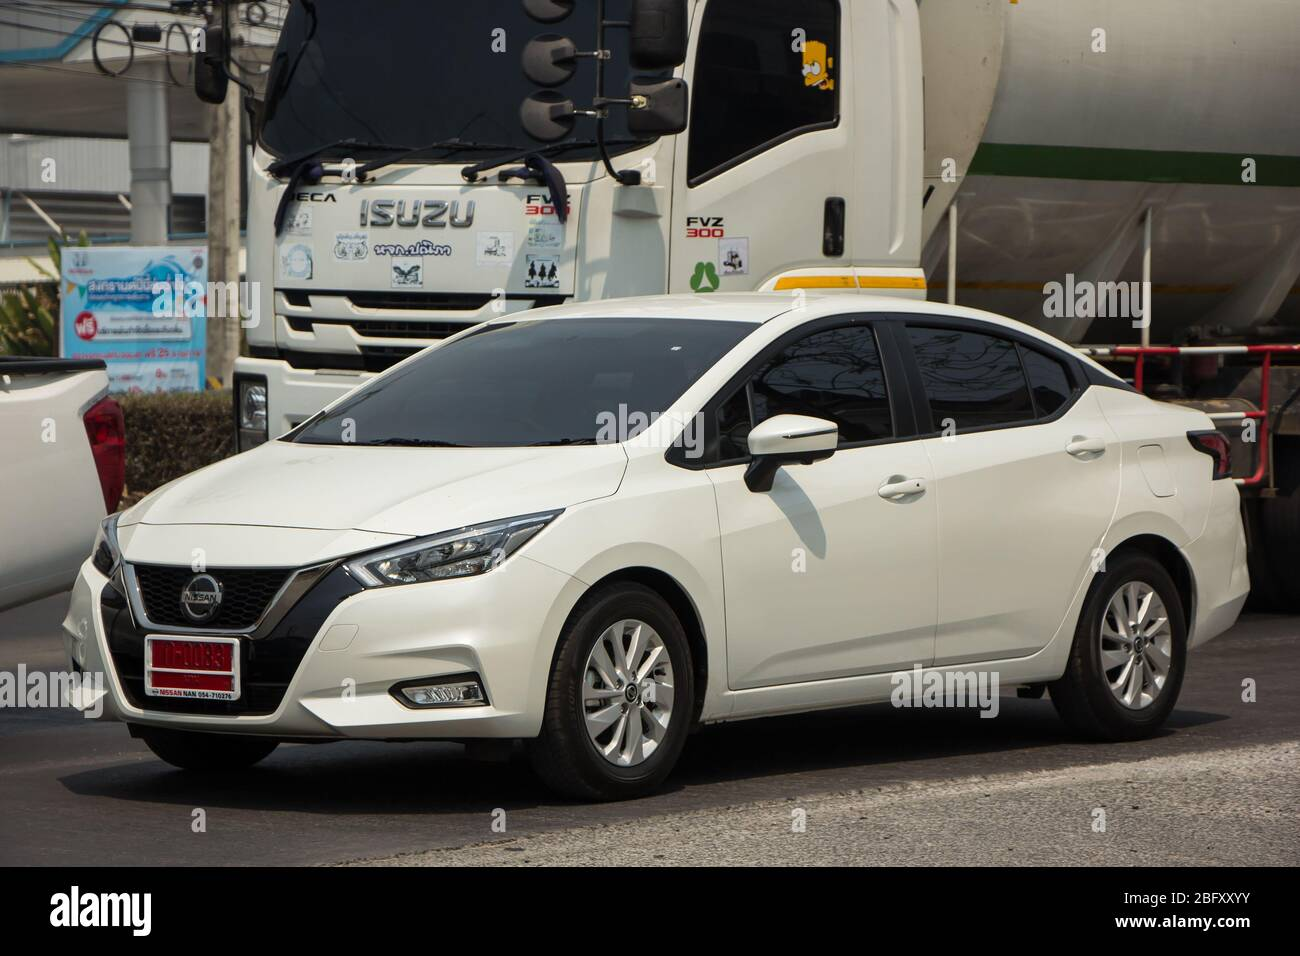 Chiangmai Thailand March 23 2020 Private Eco Car New Nissan Almera Photo At Road No 121 About 8 Km From Downtown Chiangmai Thailand Stock Photo Alamy